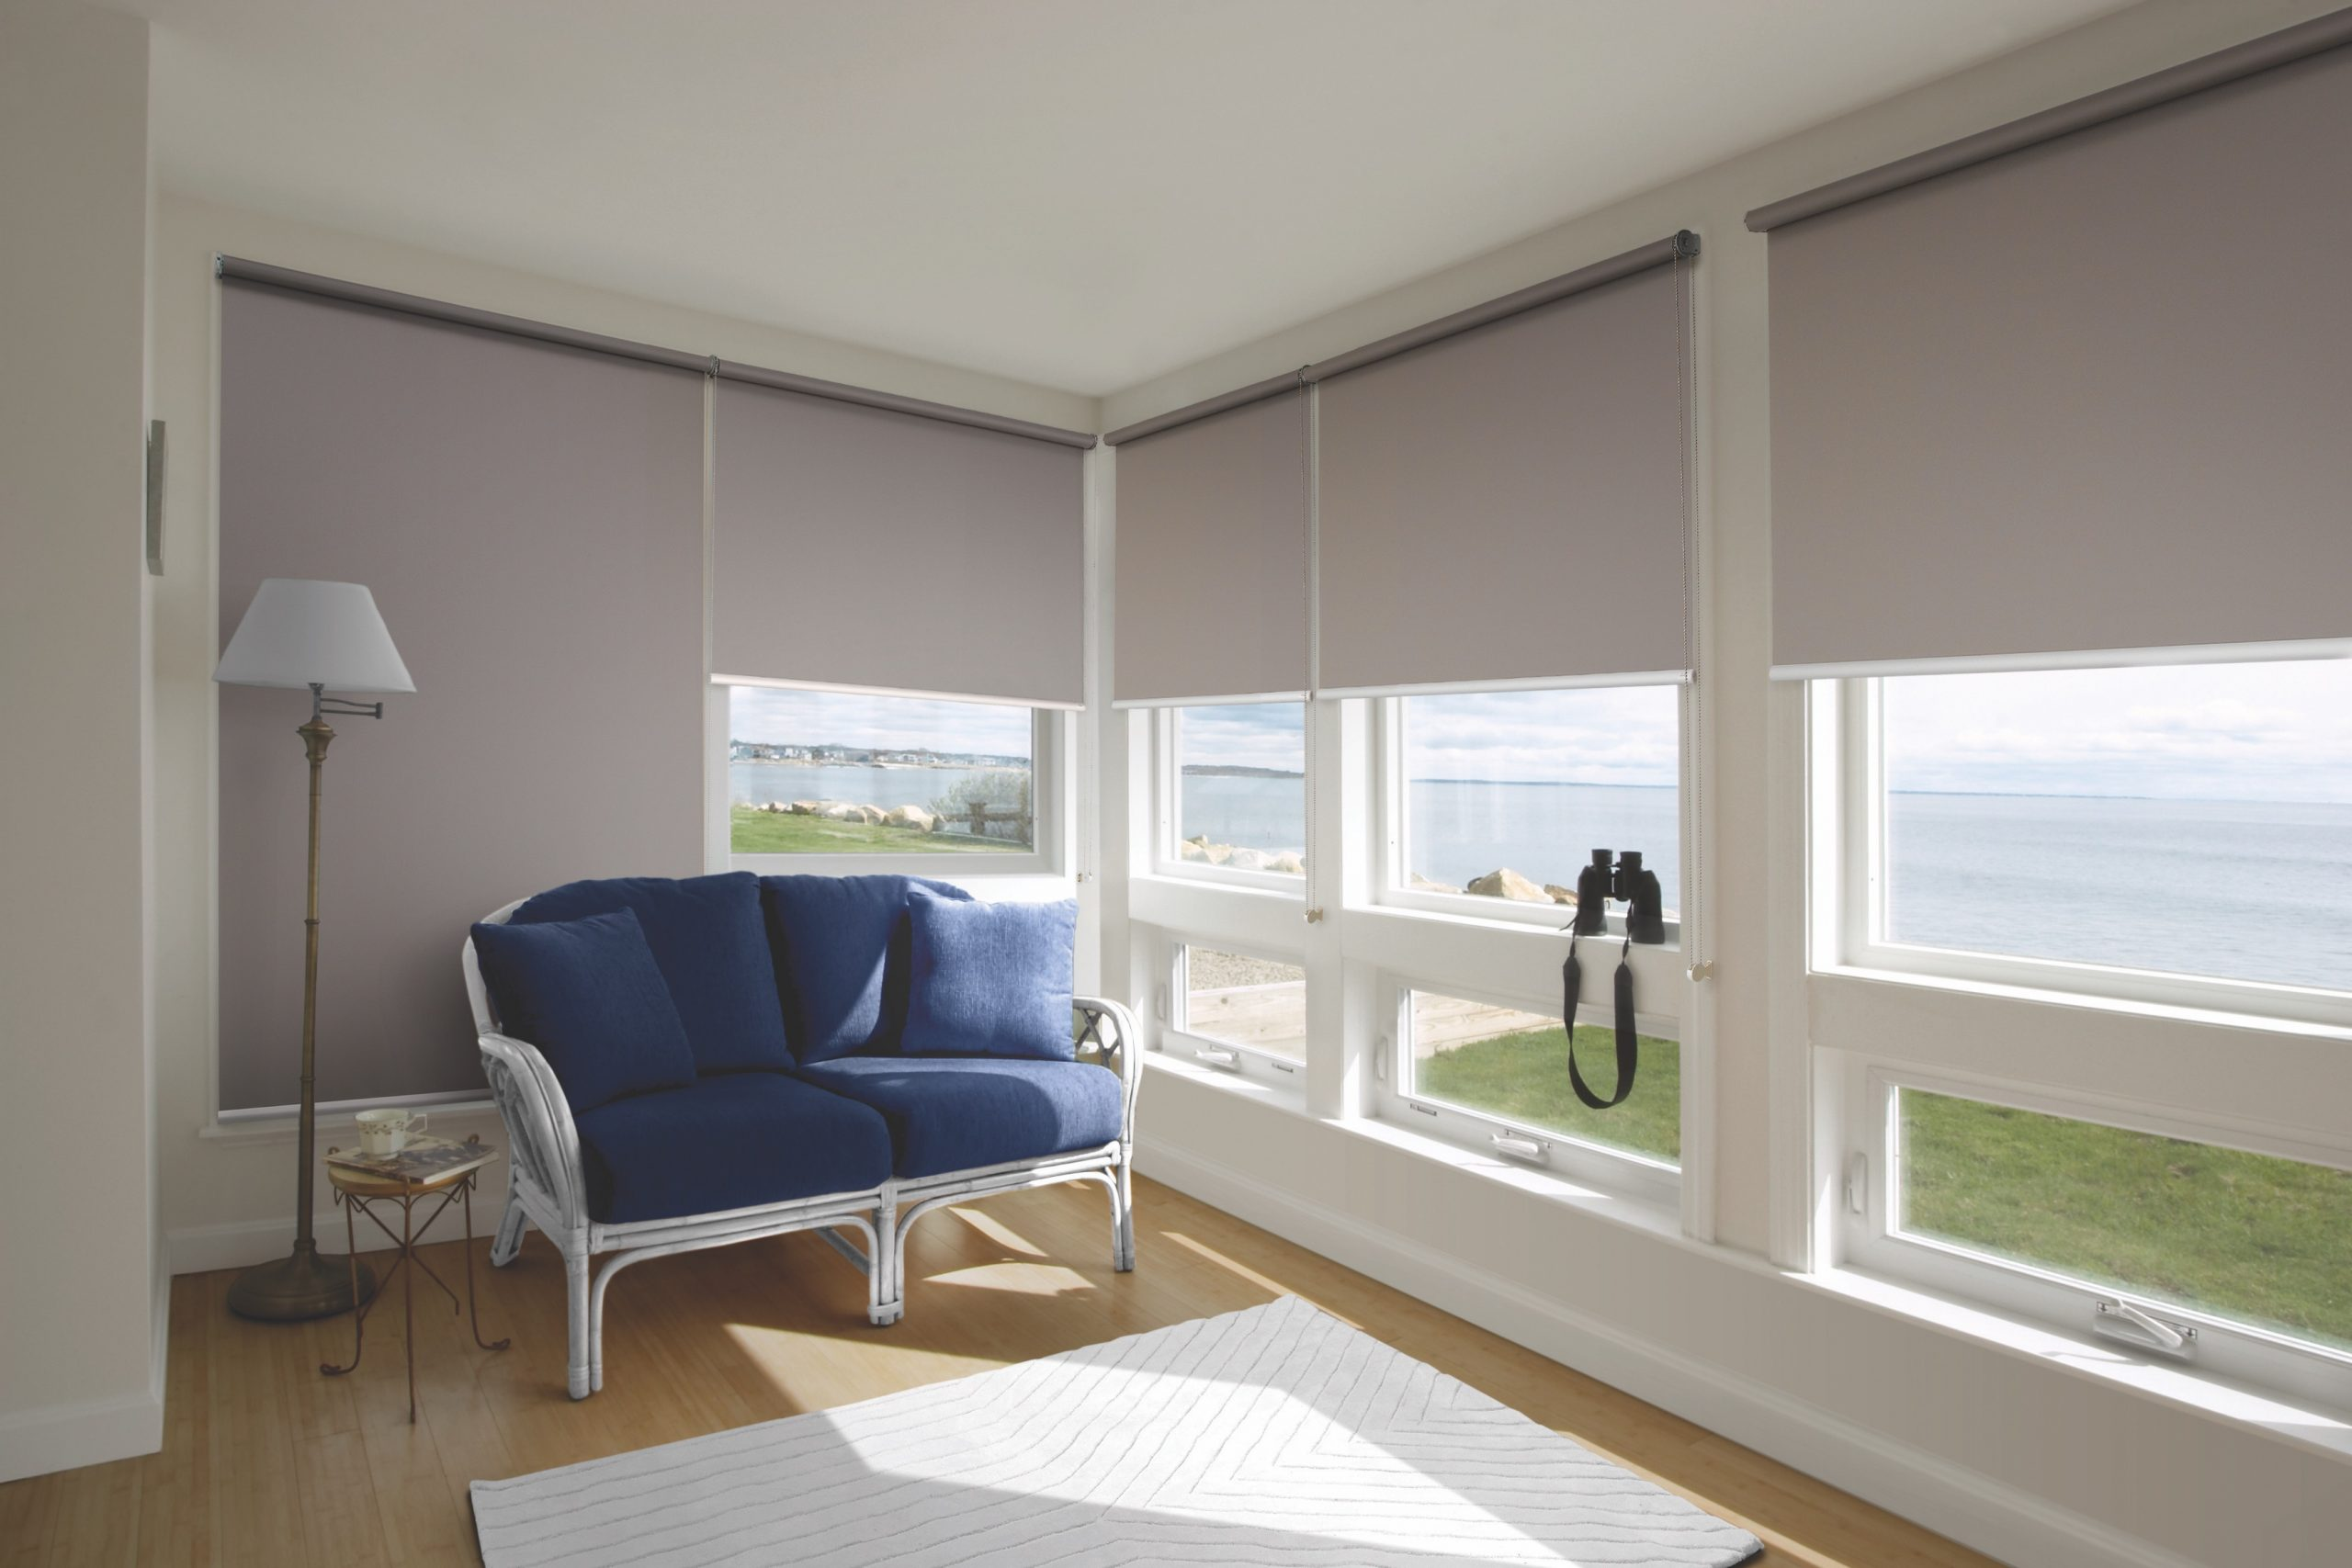 Custom made roller blinds